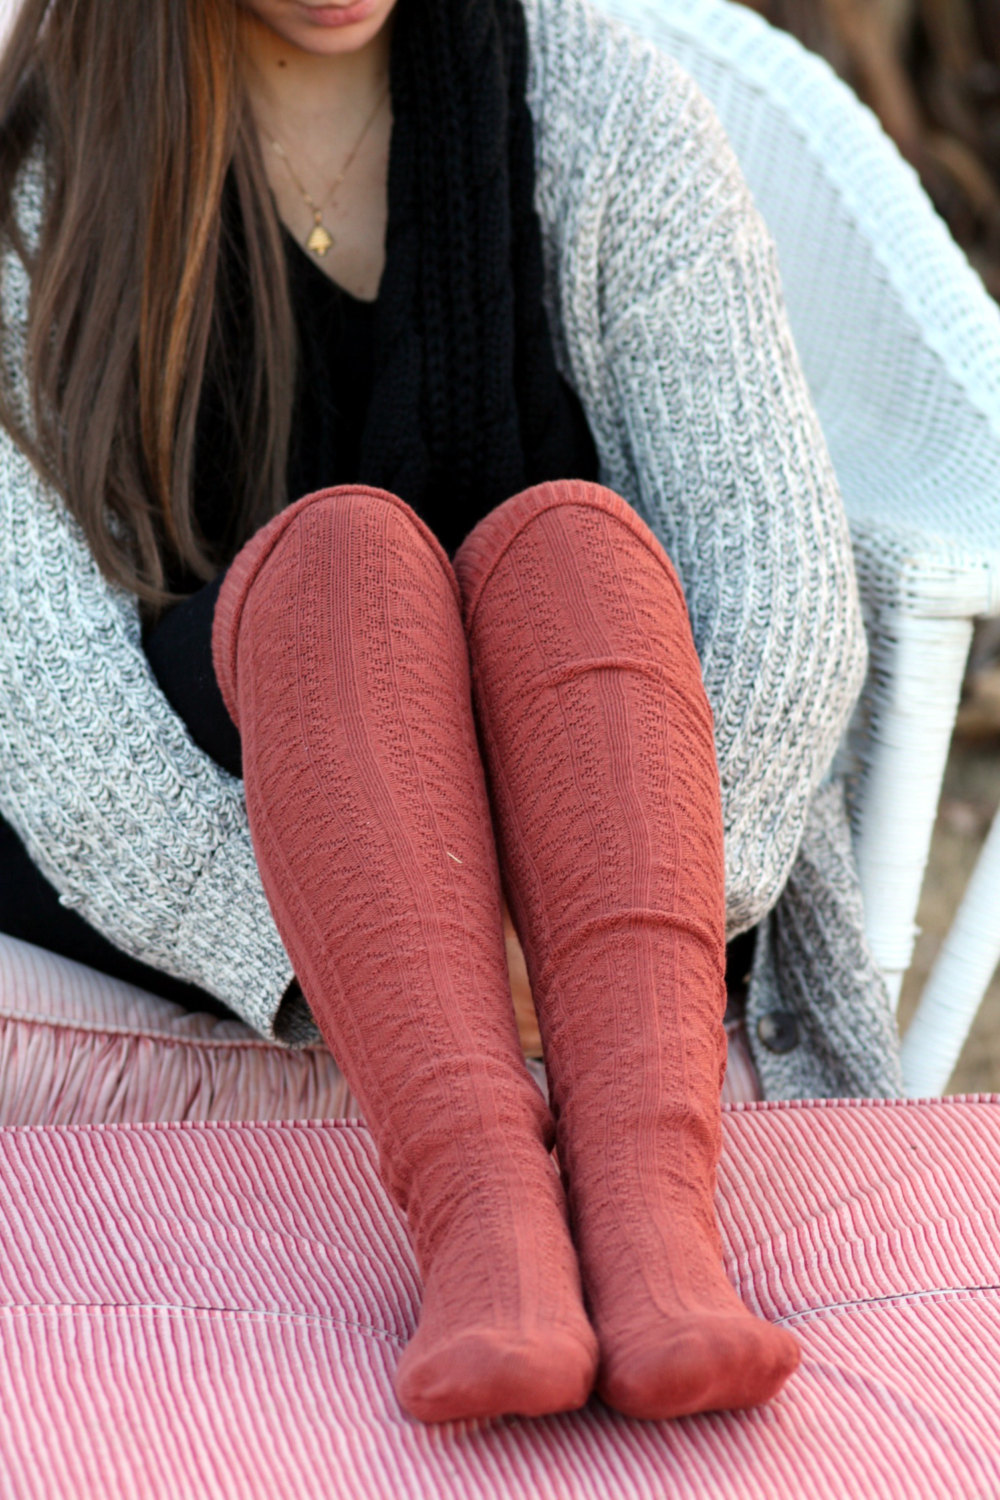 038218496d90b Above Knee Socks, Thick Cotton Socks, Extra Long Socks, Boot Socks,Burnt